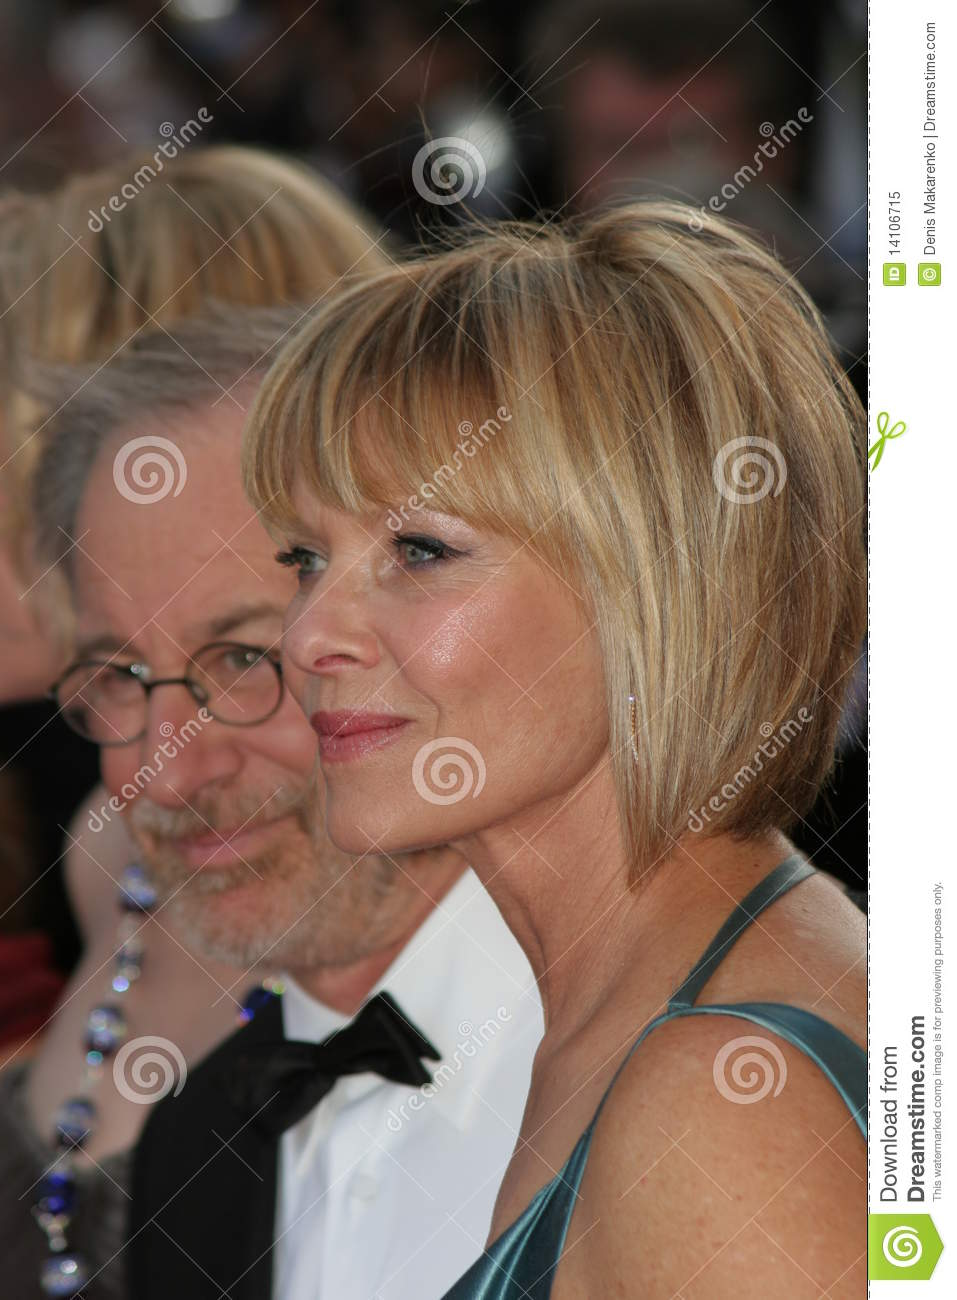 Five Great Kate Capshaw Hairstyles Ideas That You Can Share With